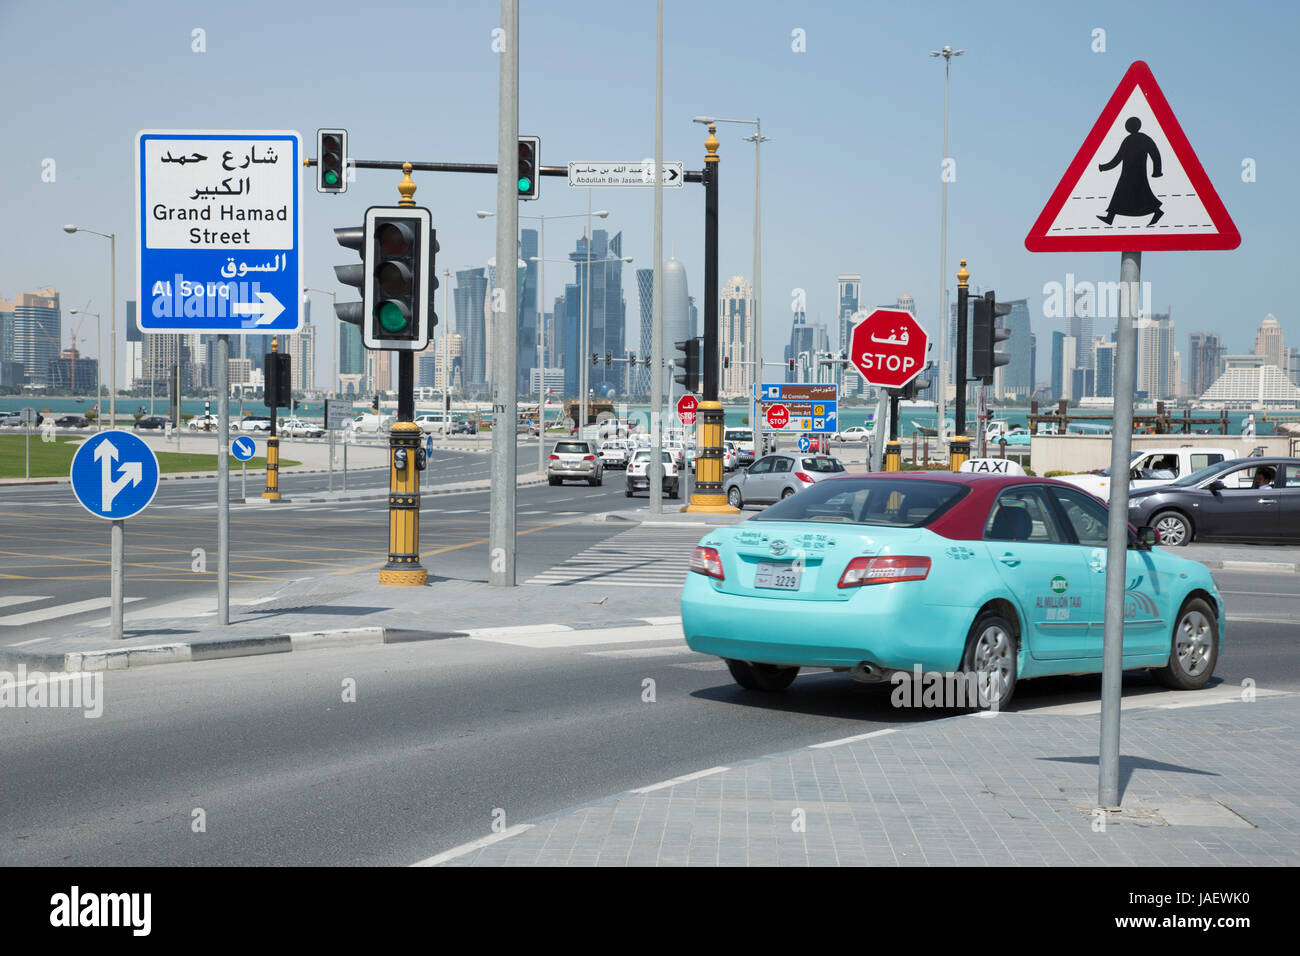 A turquoise taxi at a road junction of Al Asmakh Street and Abdullah Bin Jassim Street in Doha, Qatar. - Stock Image